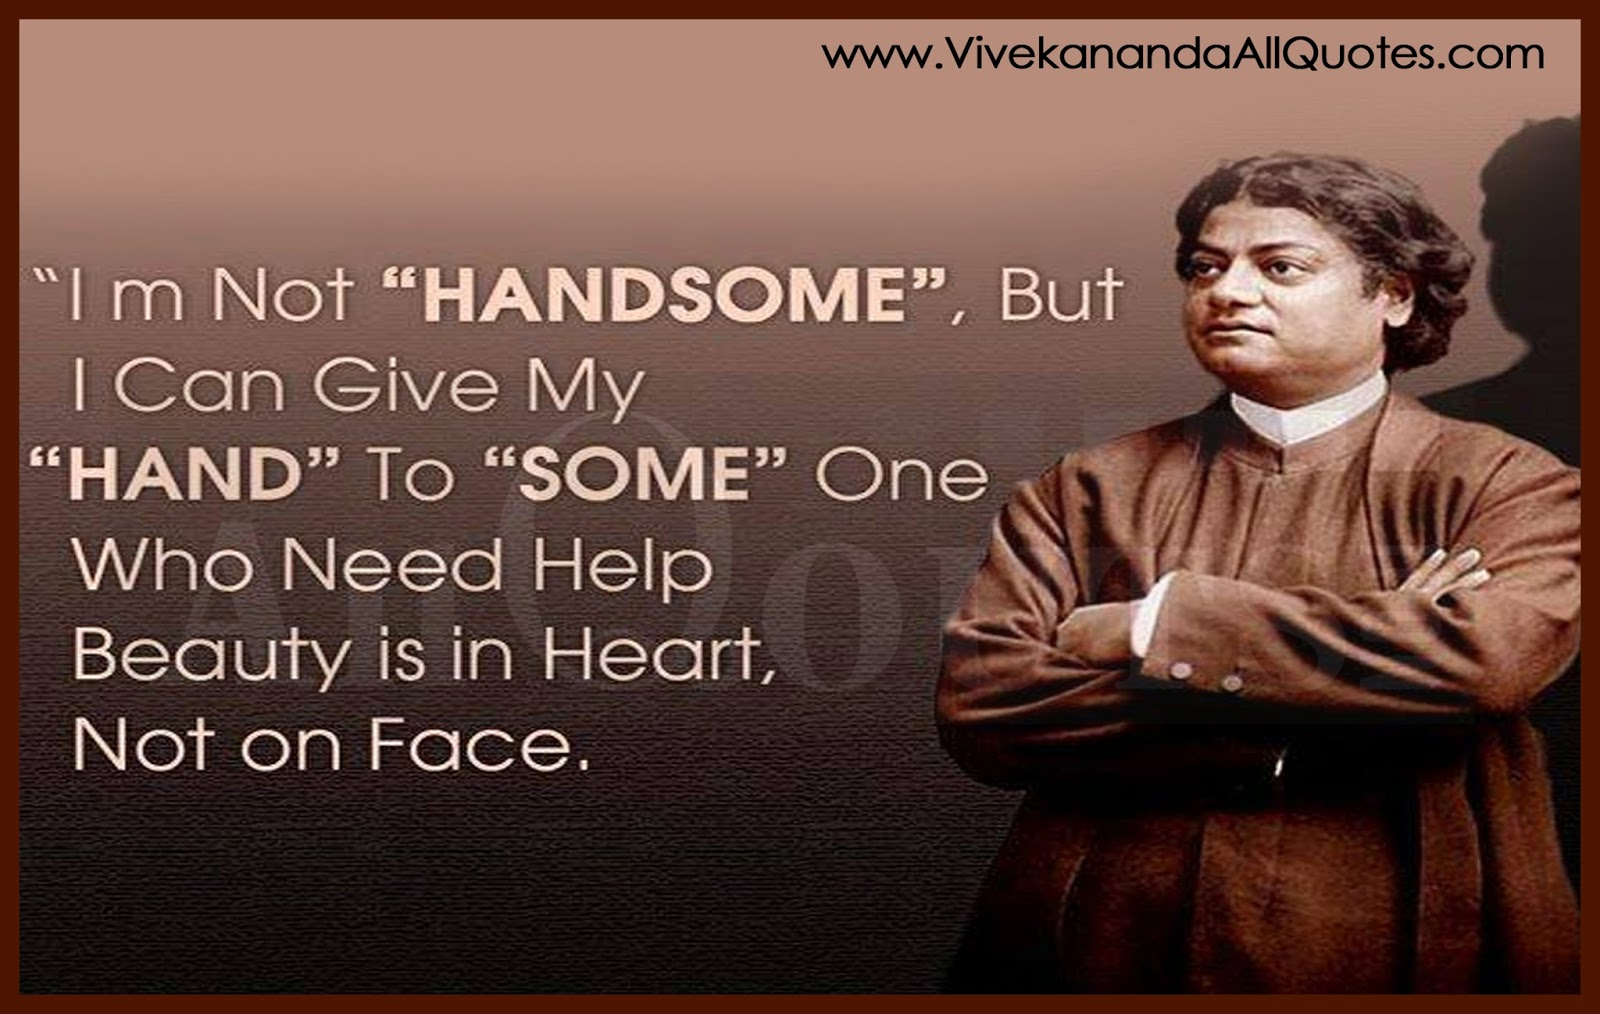 Quotes Vivekananda Vivekananda Best Quotes In English Pictures  Www